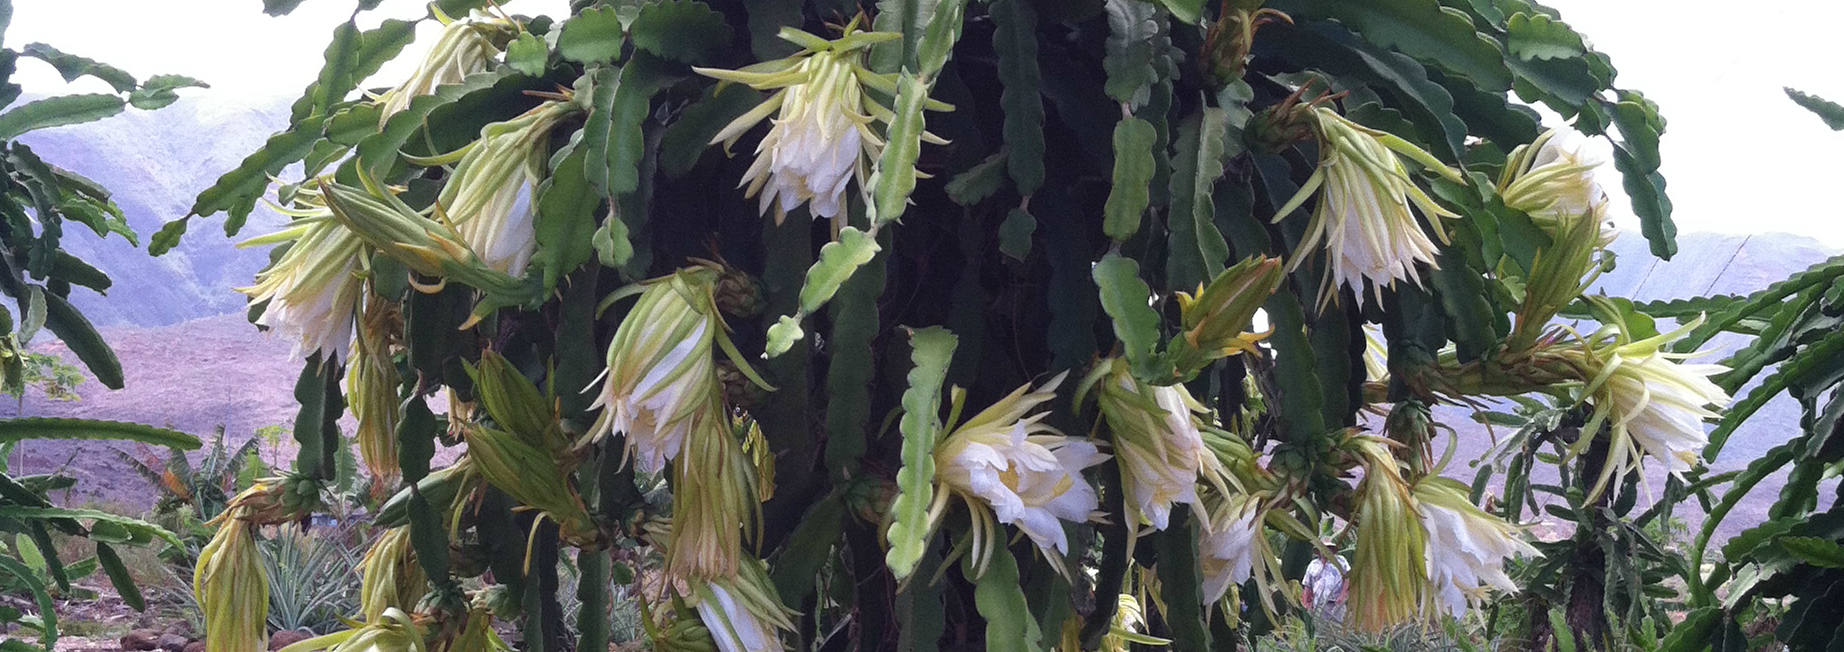 Beautiful Flowering Dragon Fruit Vine